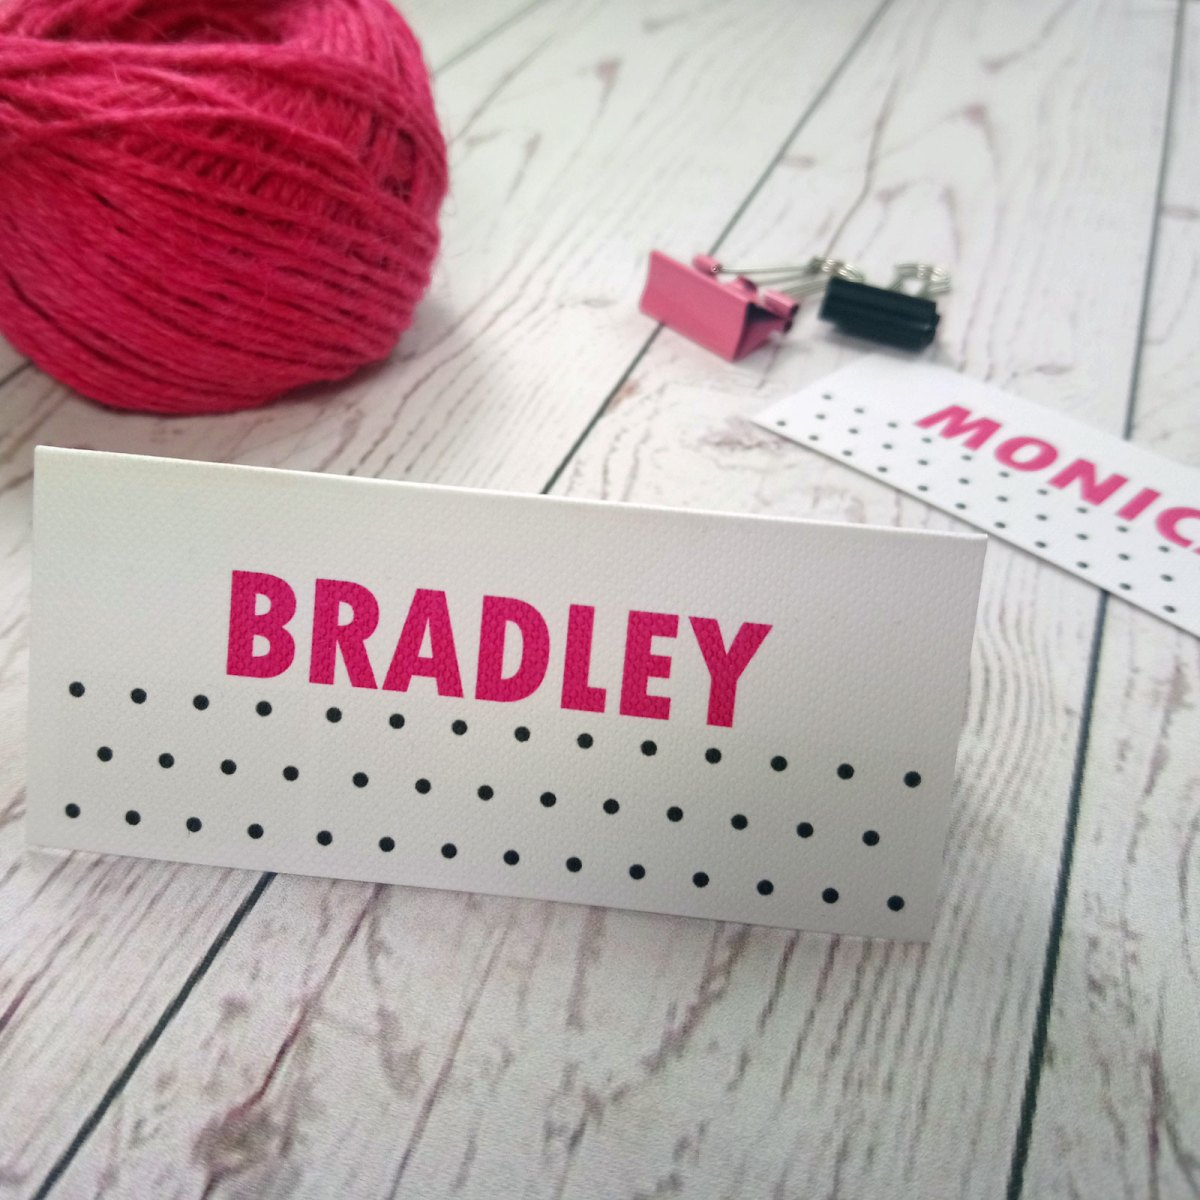 Polka Dot Place Cards. Generic Picture with pink guest names and black polka dots on white textured card